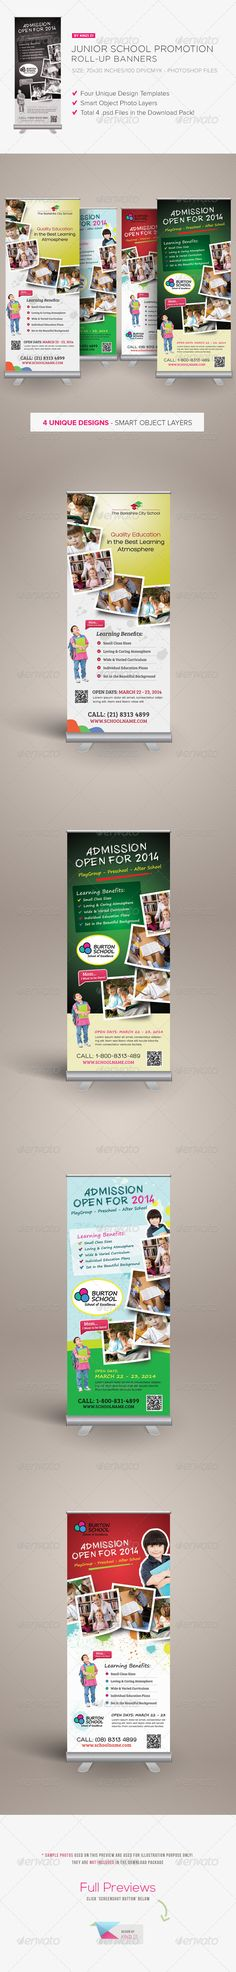 Junior School Promotion Roll-up Banners